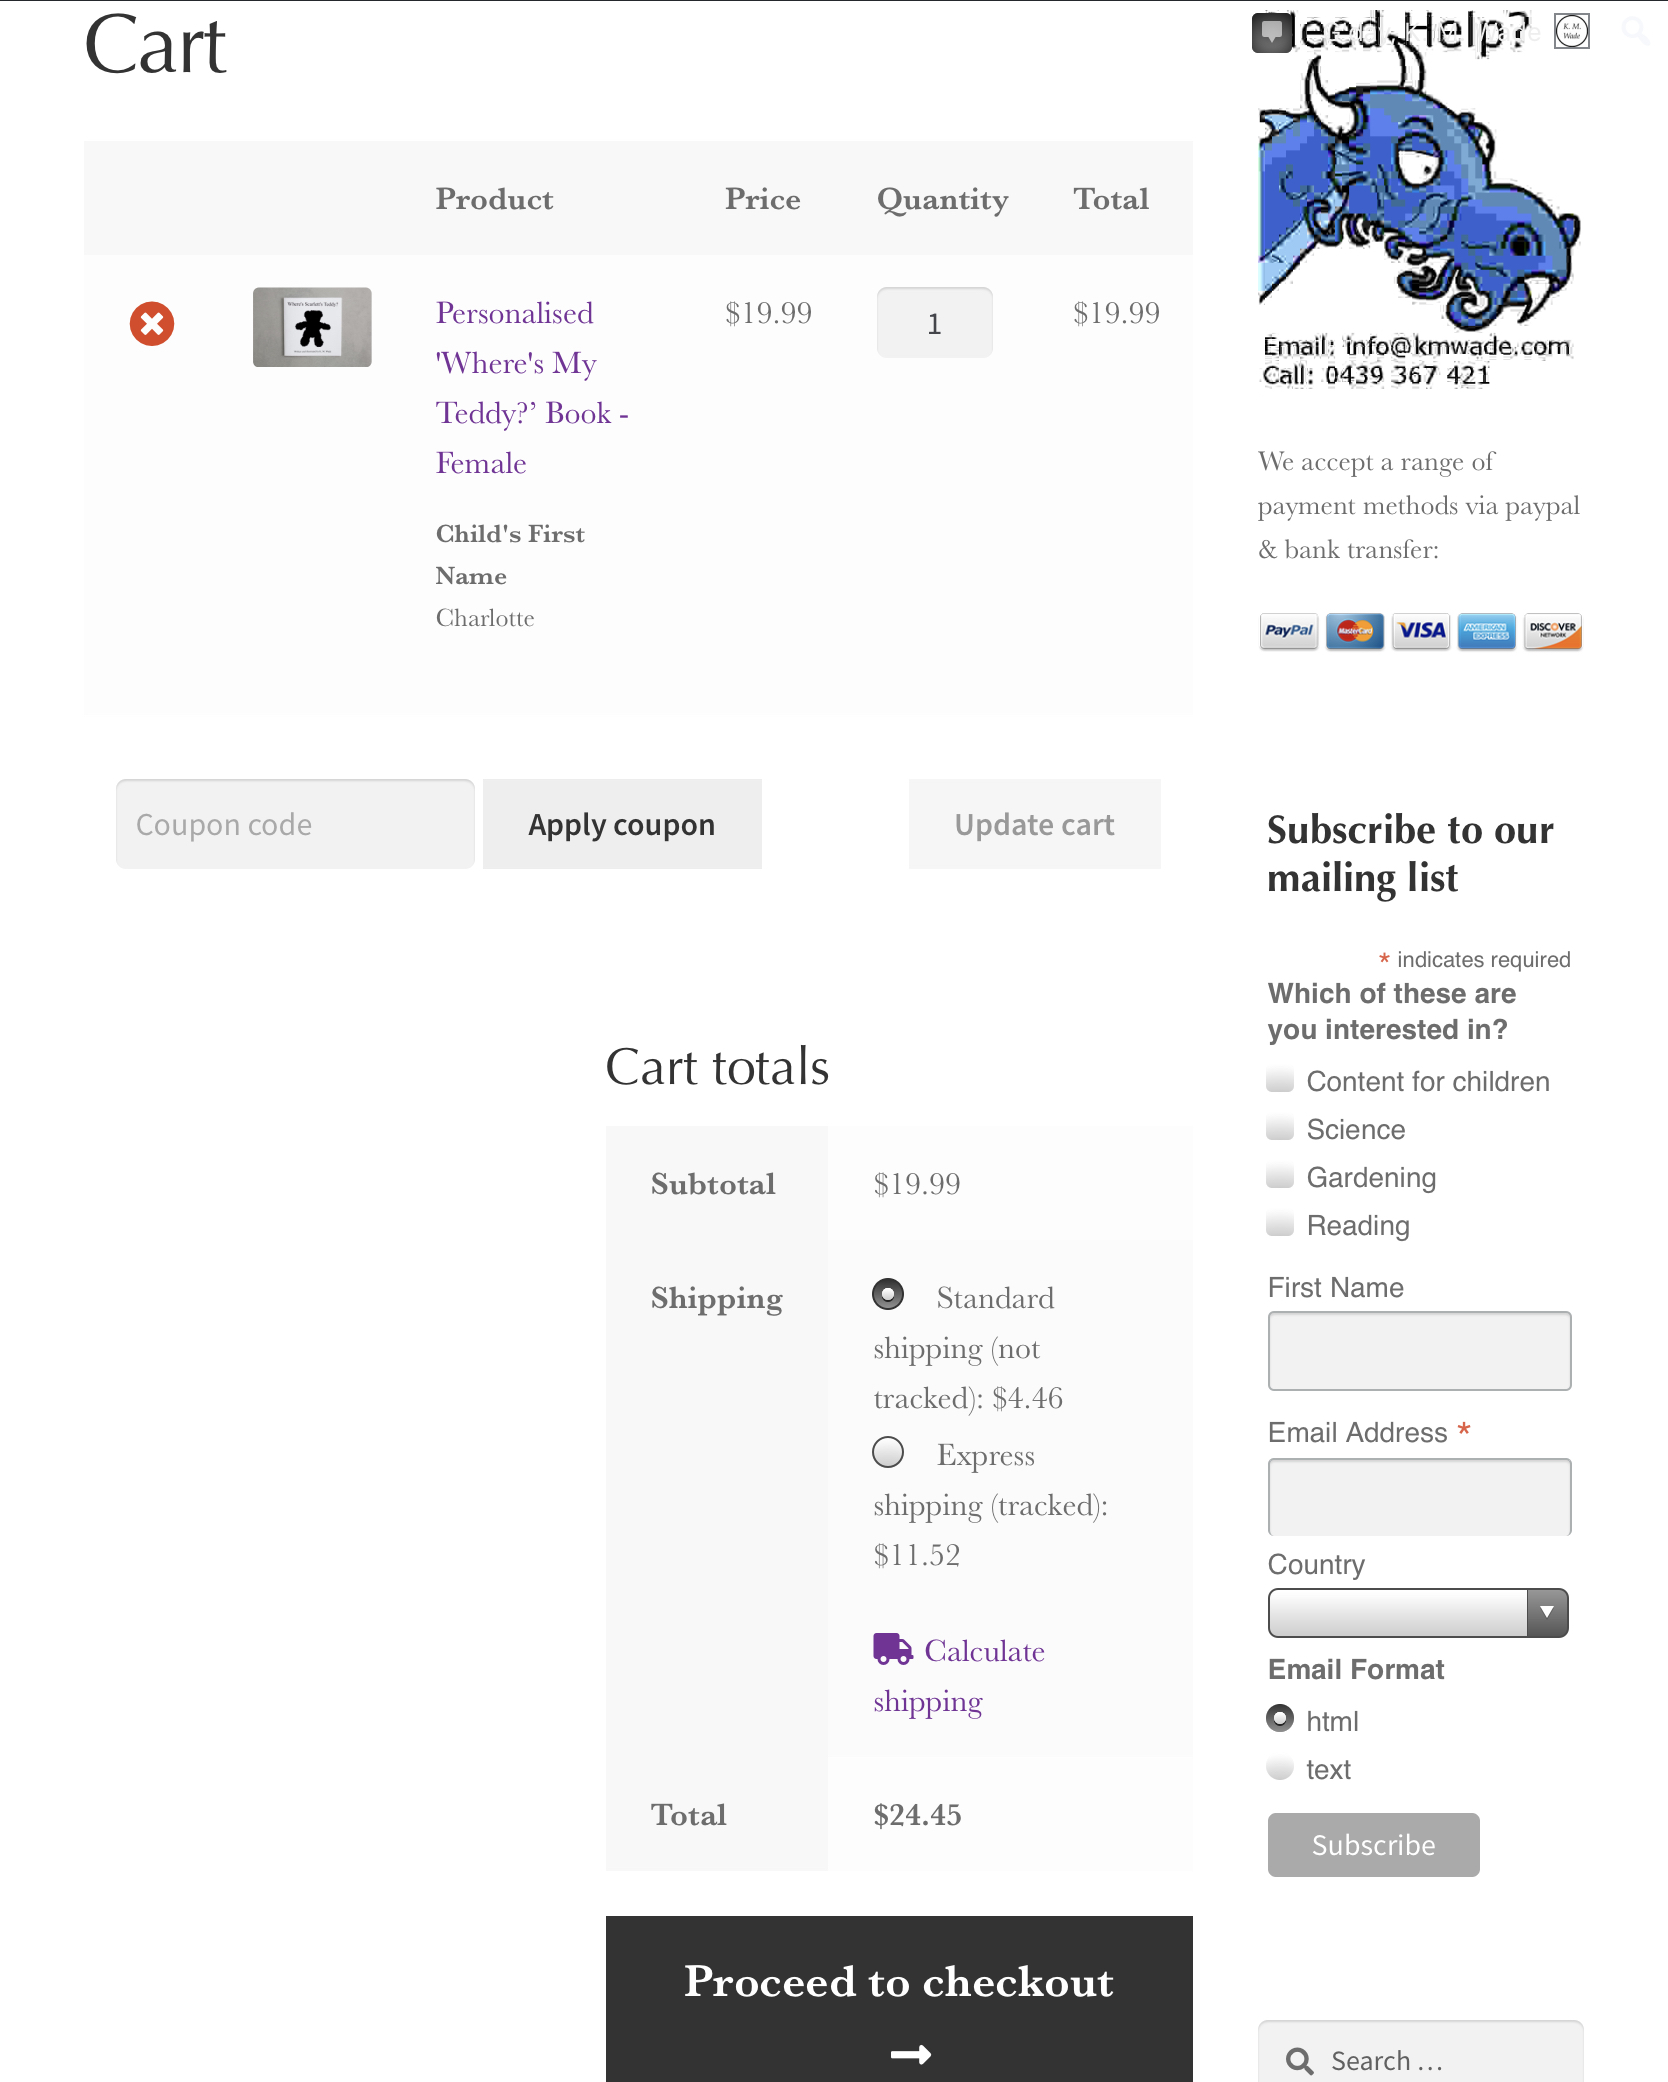 The K. M. Wade shopping cart page